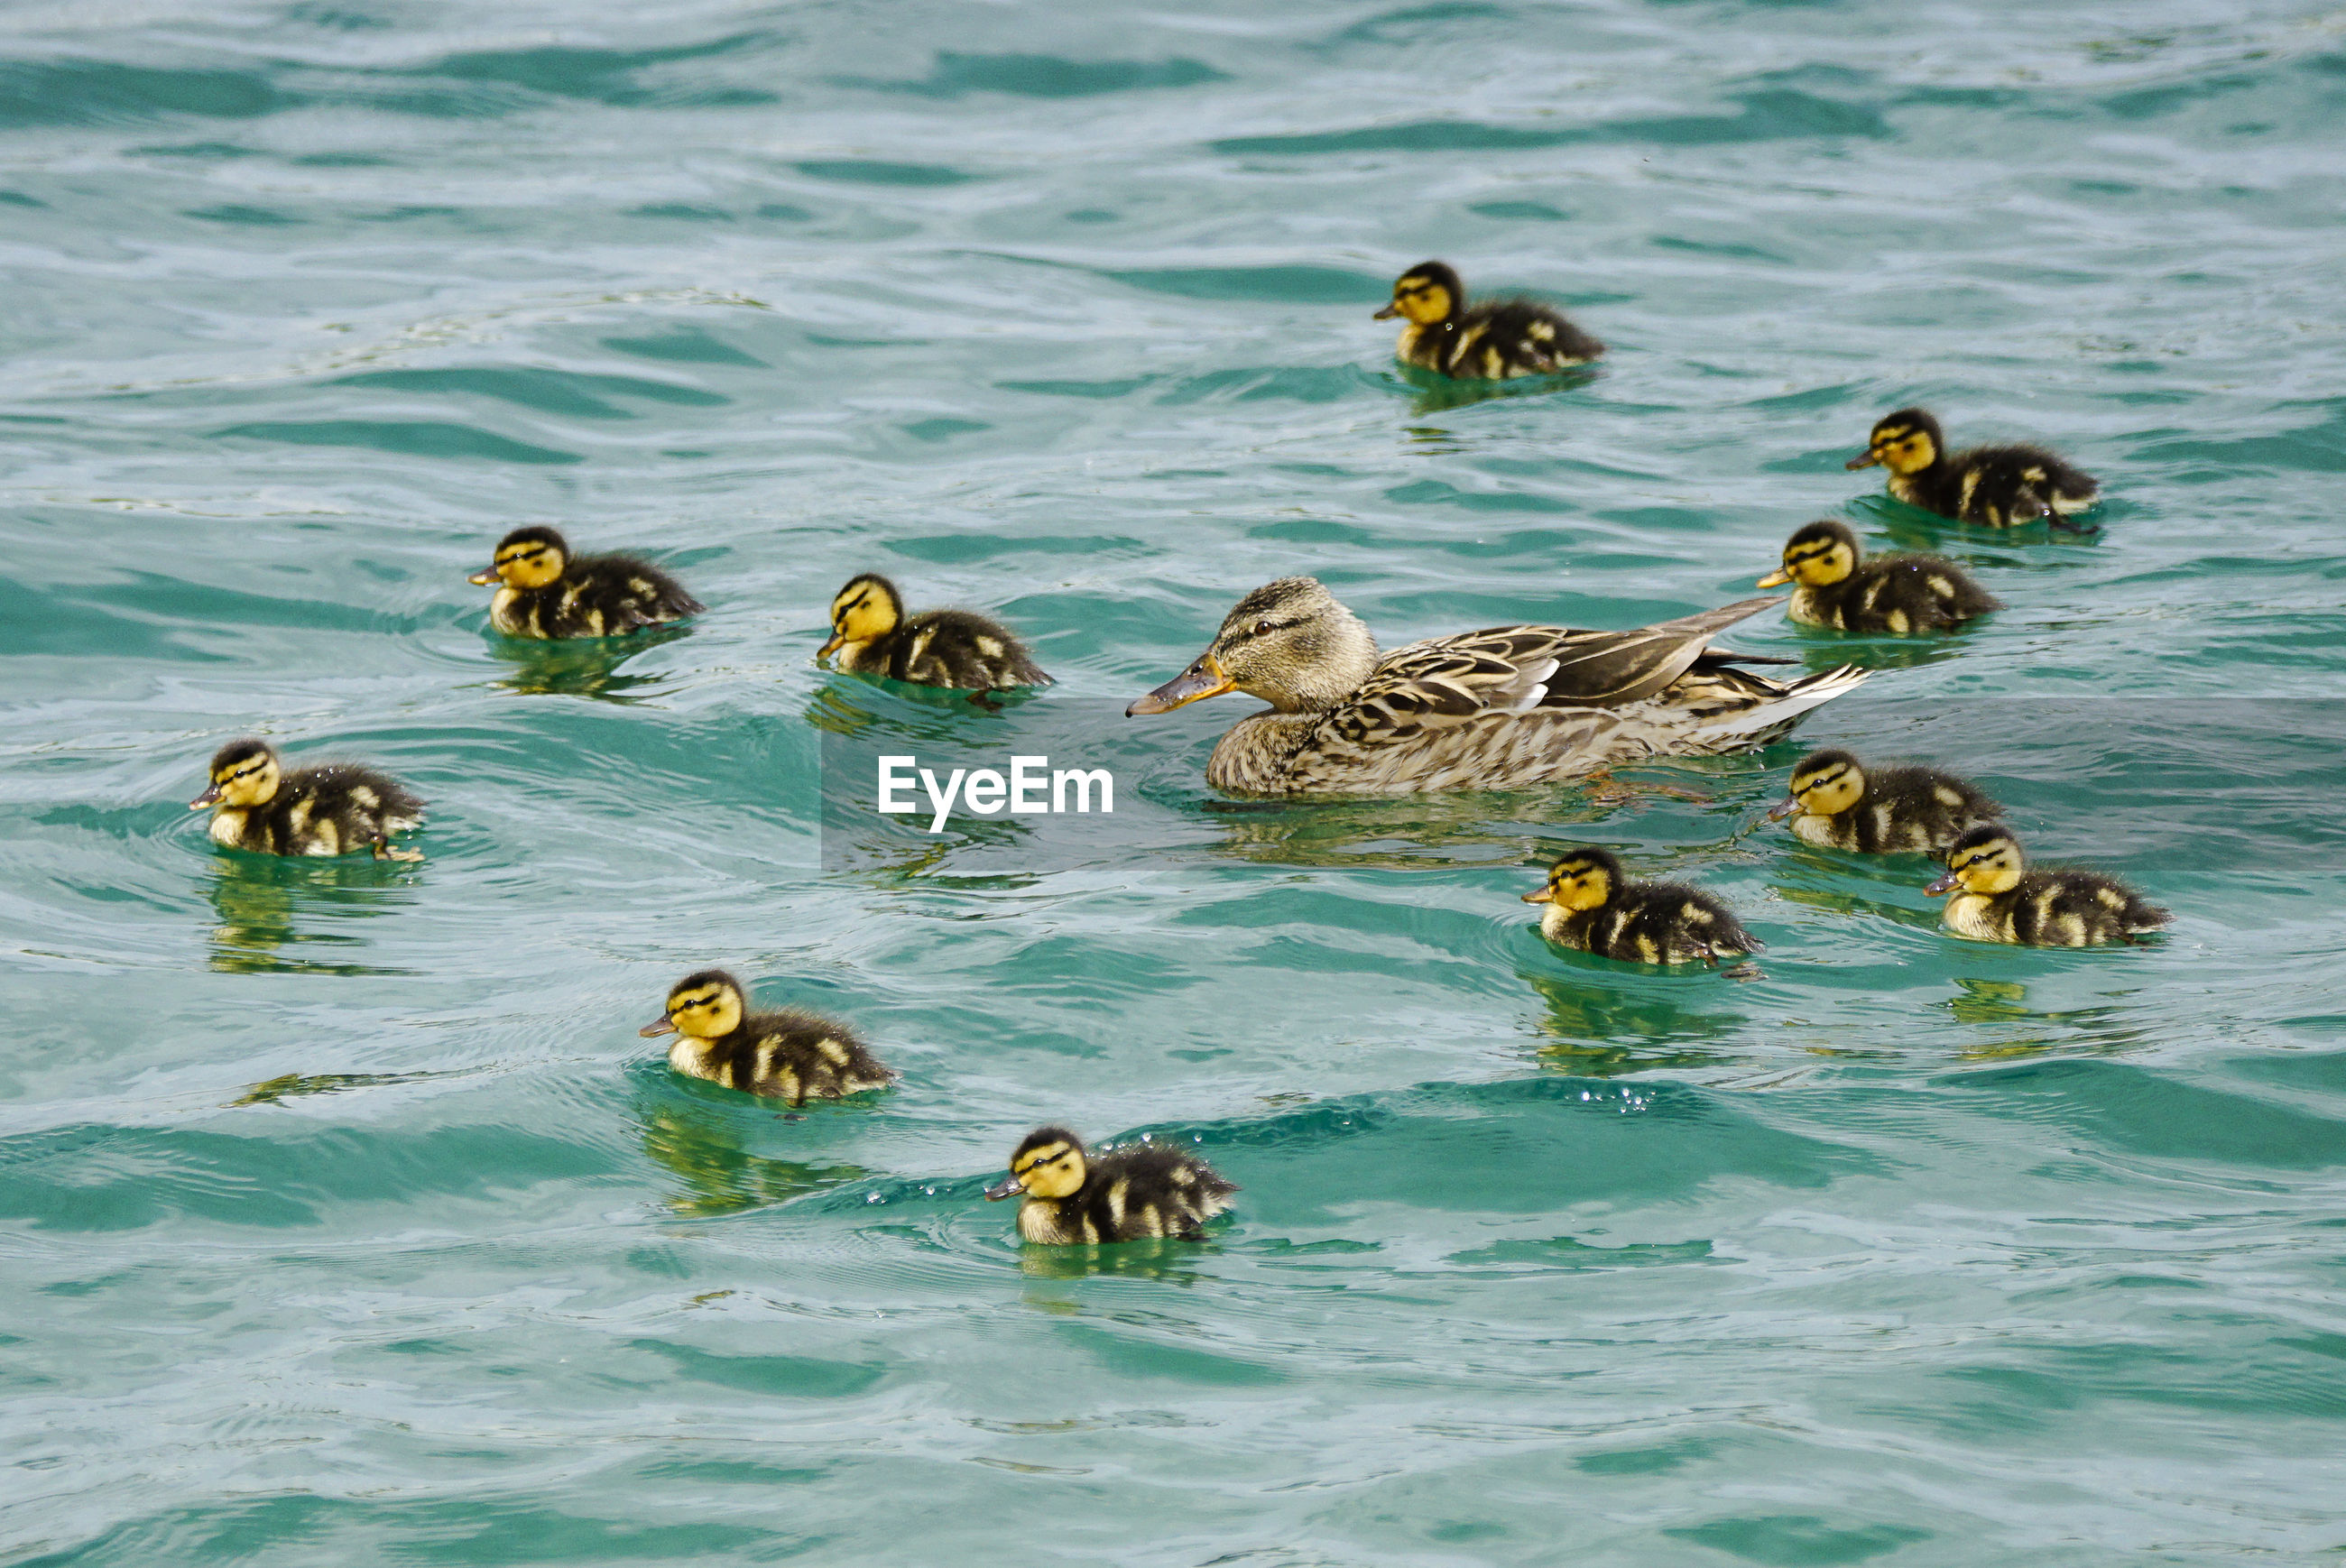 High angle view of mallard duck with ducklings swimming in river